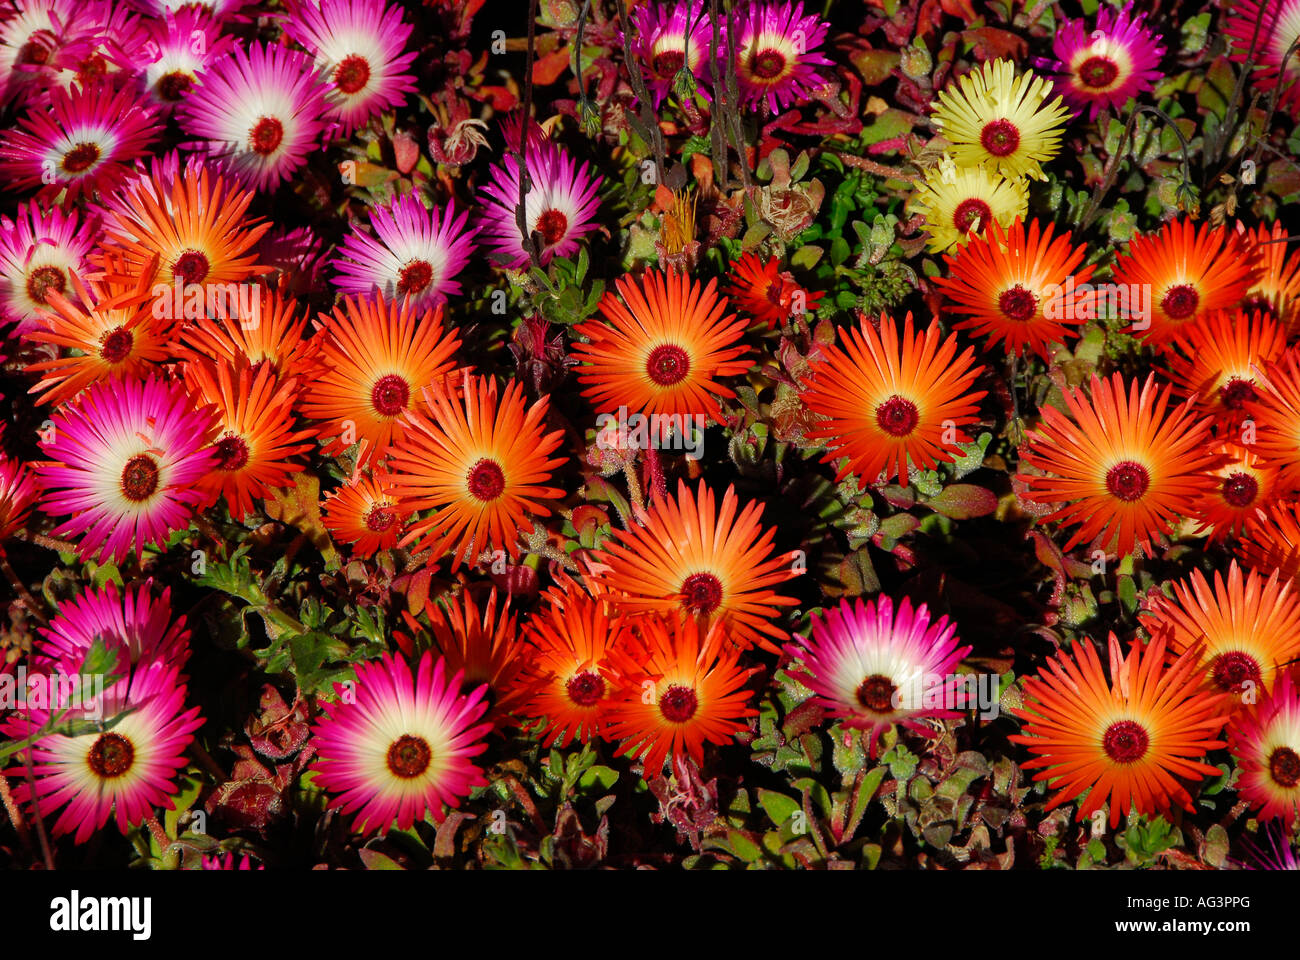 Spring show of bokbaai vygies, an annual species of succulent that grows in dry parts of South Africa - Stock Image